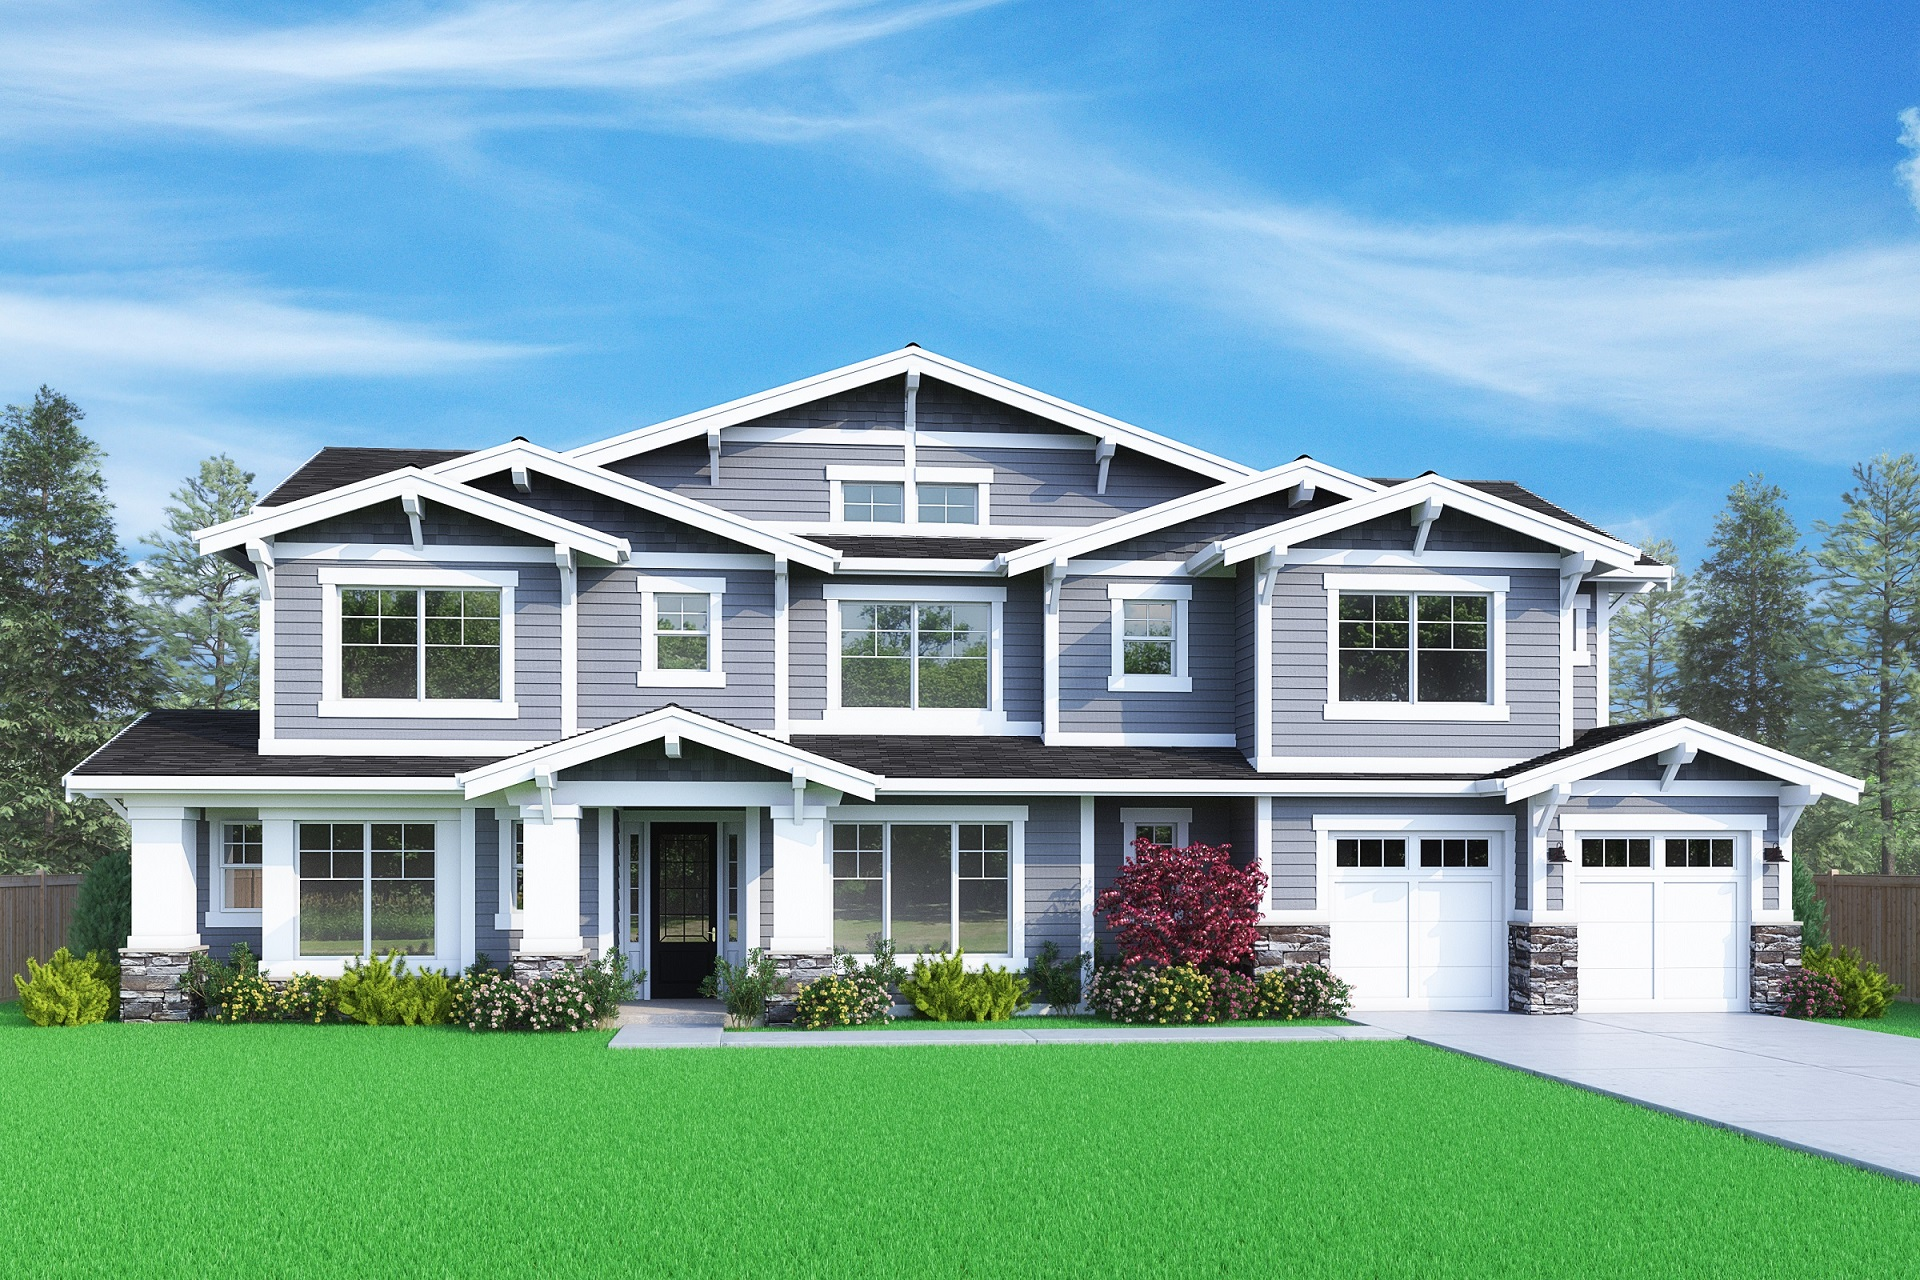 View our new luxury home construction on 233 110th Pl SE, in Bellevue, WA from MN Custom Homes